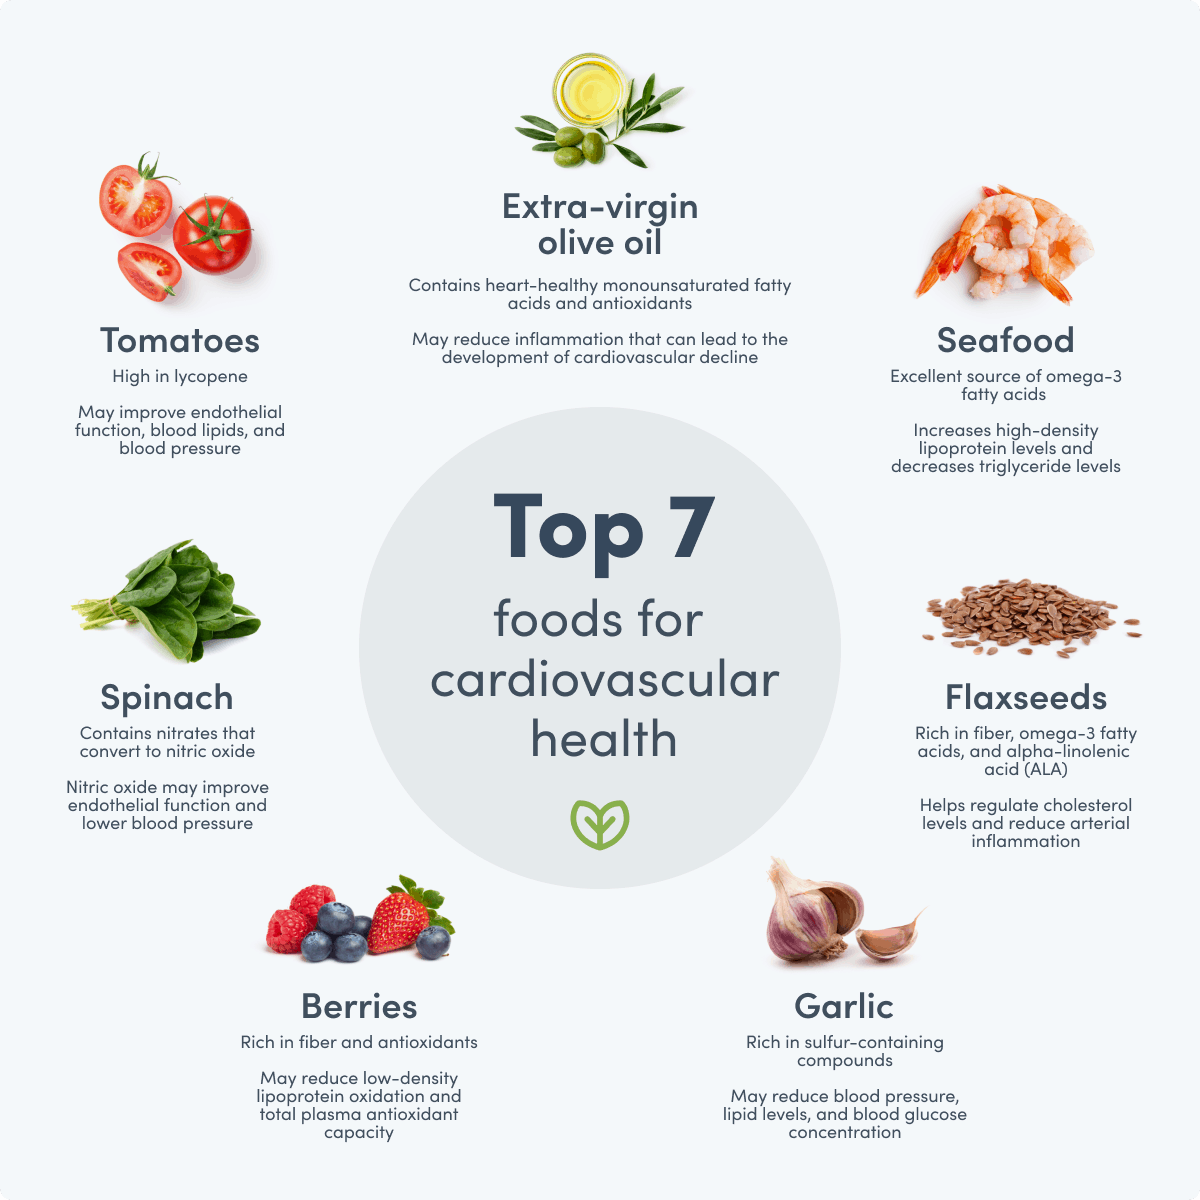 Top foods for cardiovascular health